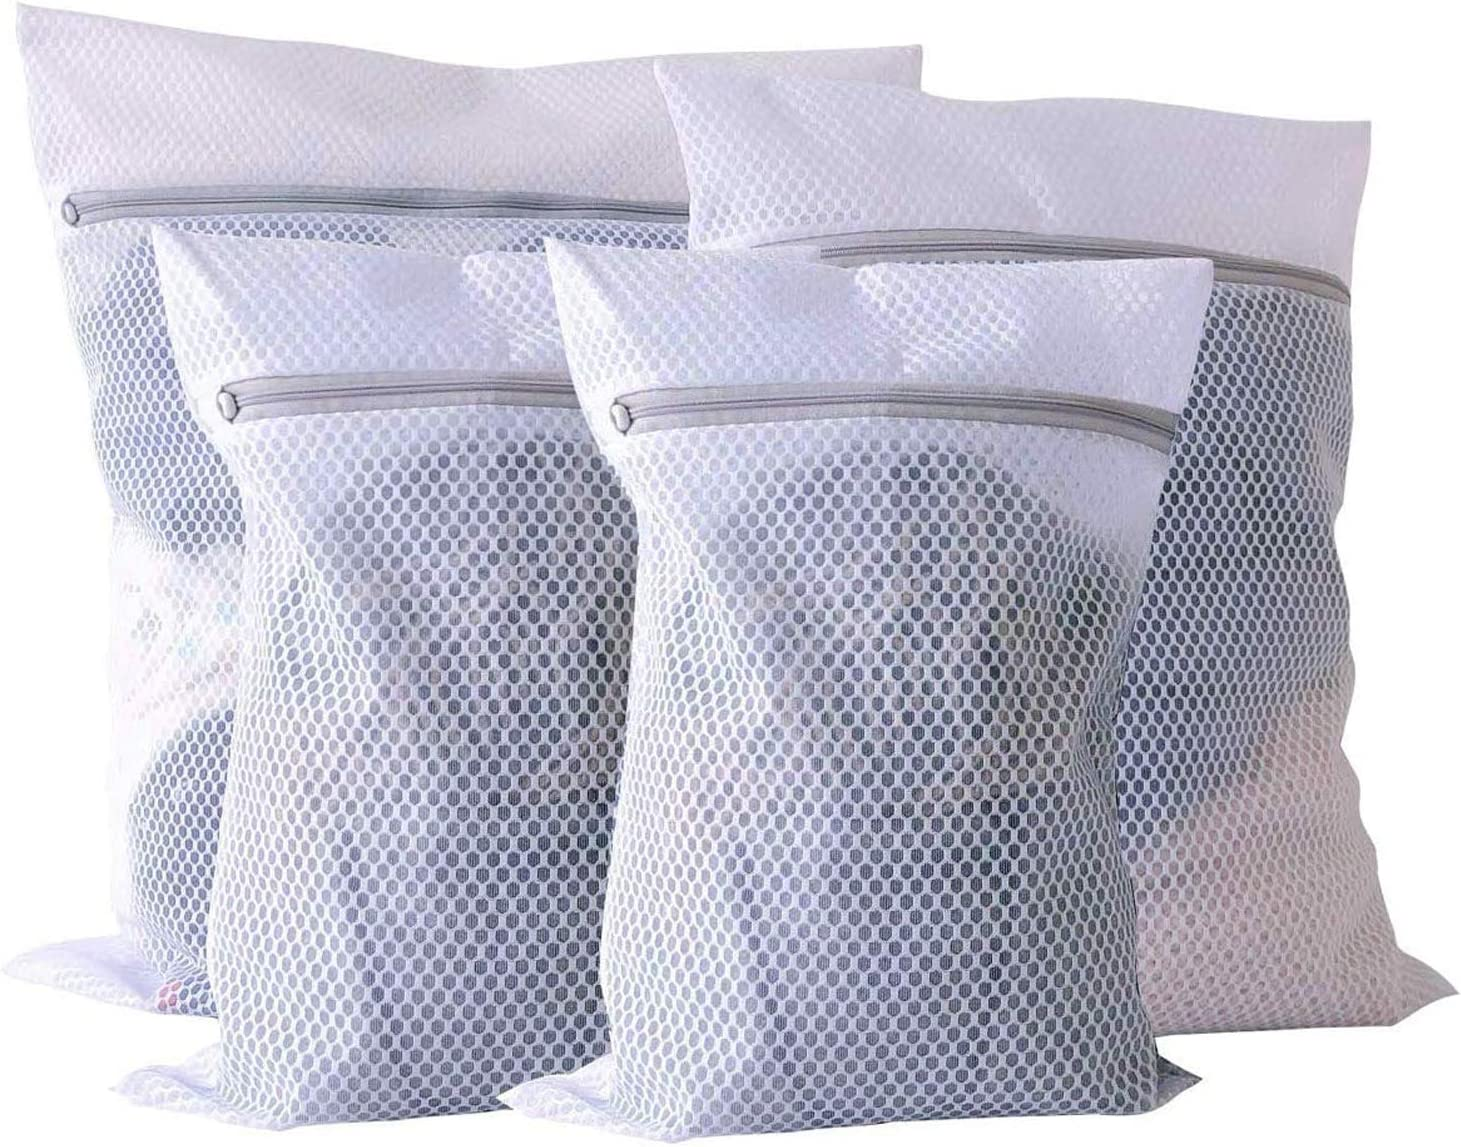 Extra Large Laundry Bag Mesh Wash - Pack of 4 (2 Extra Large and 2 Large) Durable and Reusable Wash Bag, Travel Organization Bag For Clothing, Jeans, Bath Towels, Sheets.